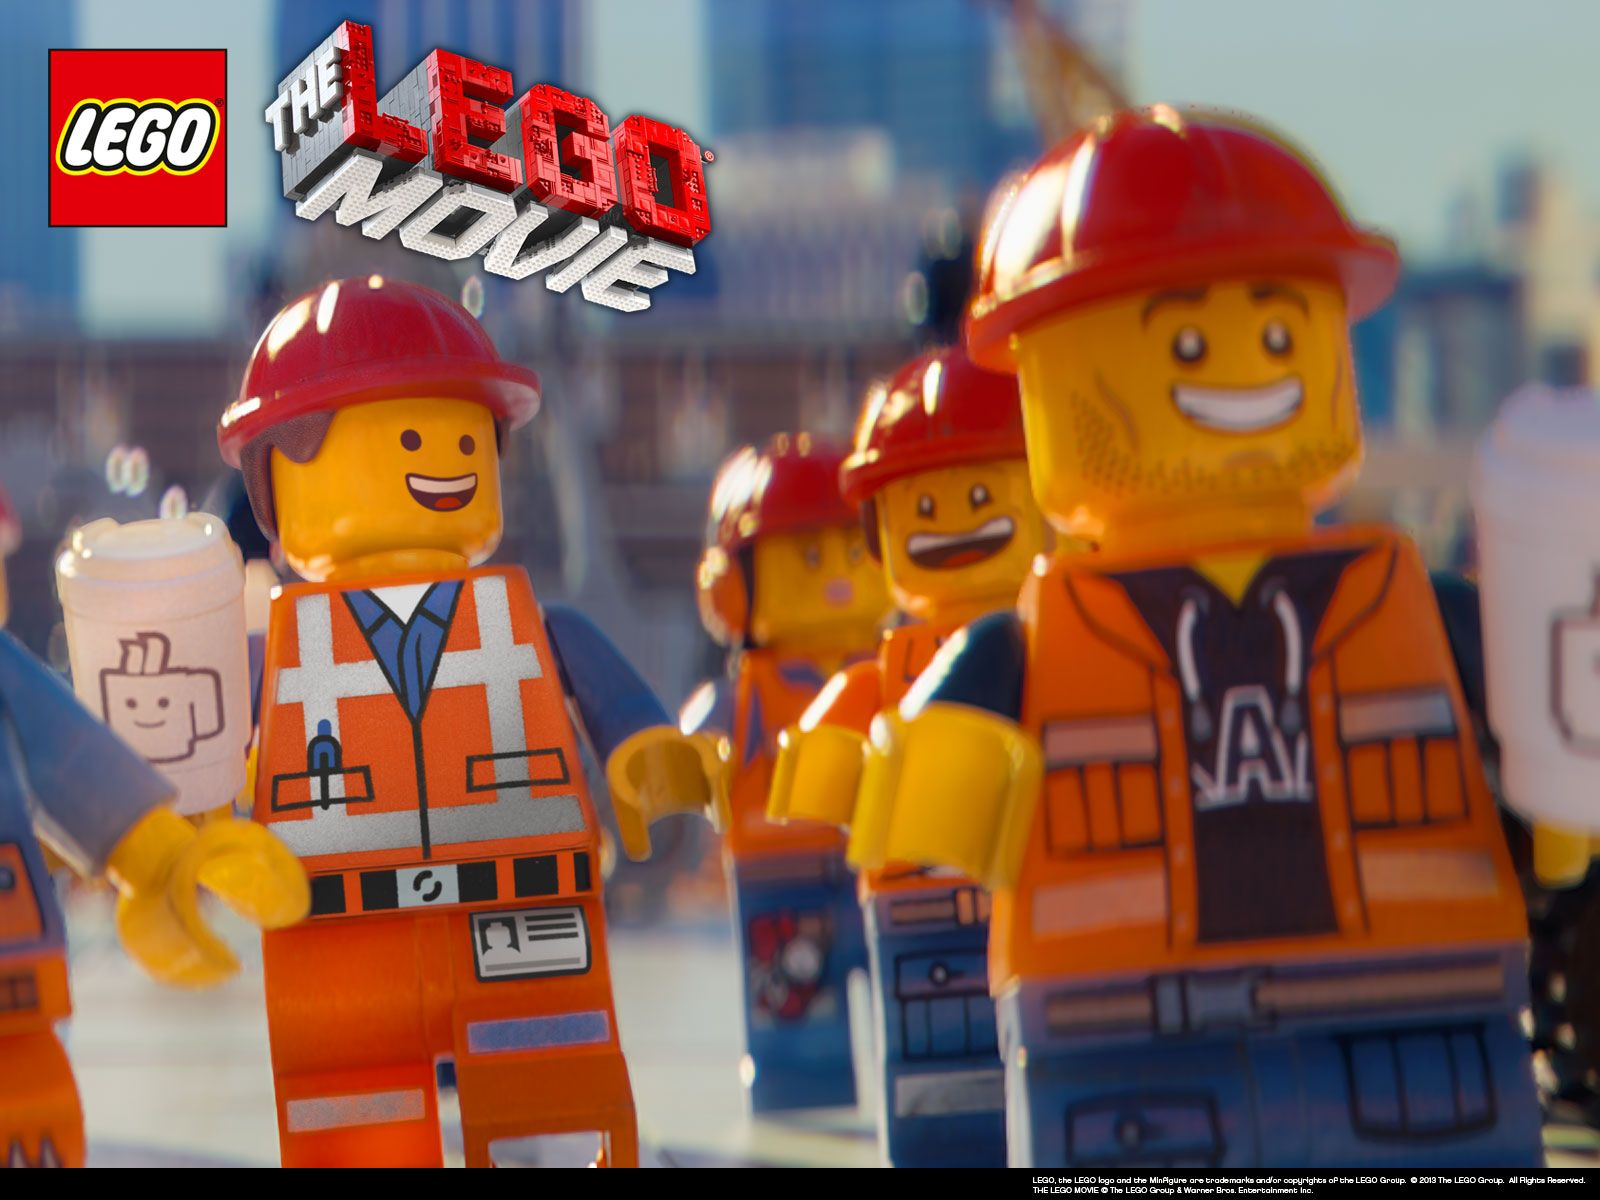 The lego movie the lego movie 2014 wallpapers desktop the lego movie the lego movie 2014 wallpapers desktop backgrounds lego movie hd movie voltagebd Gallery